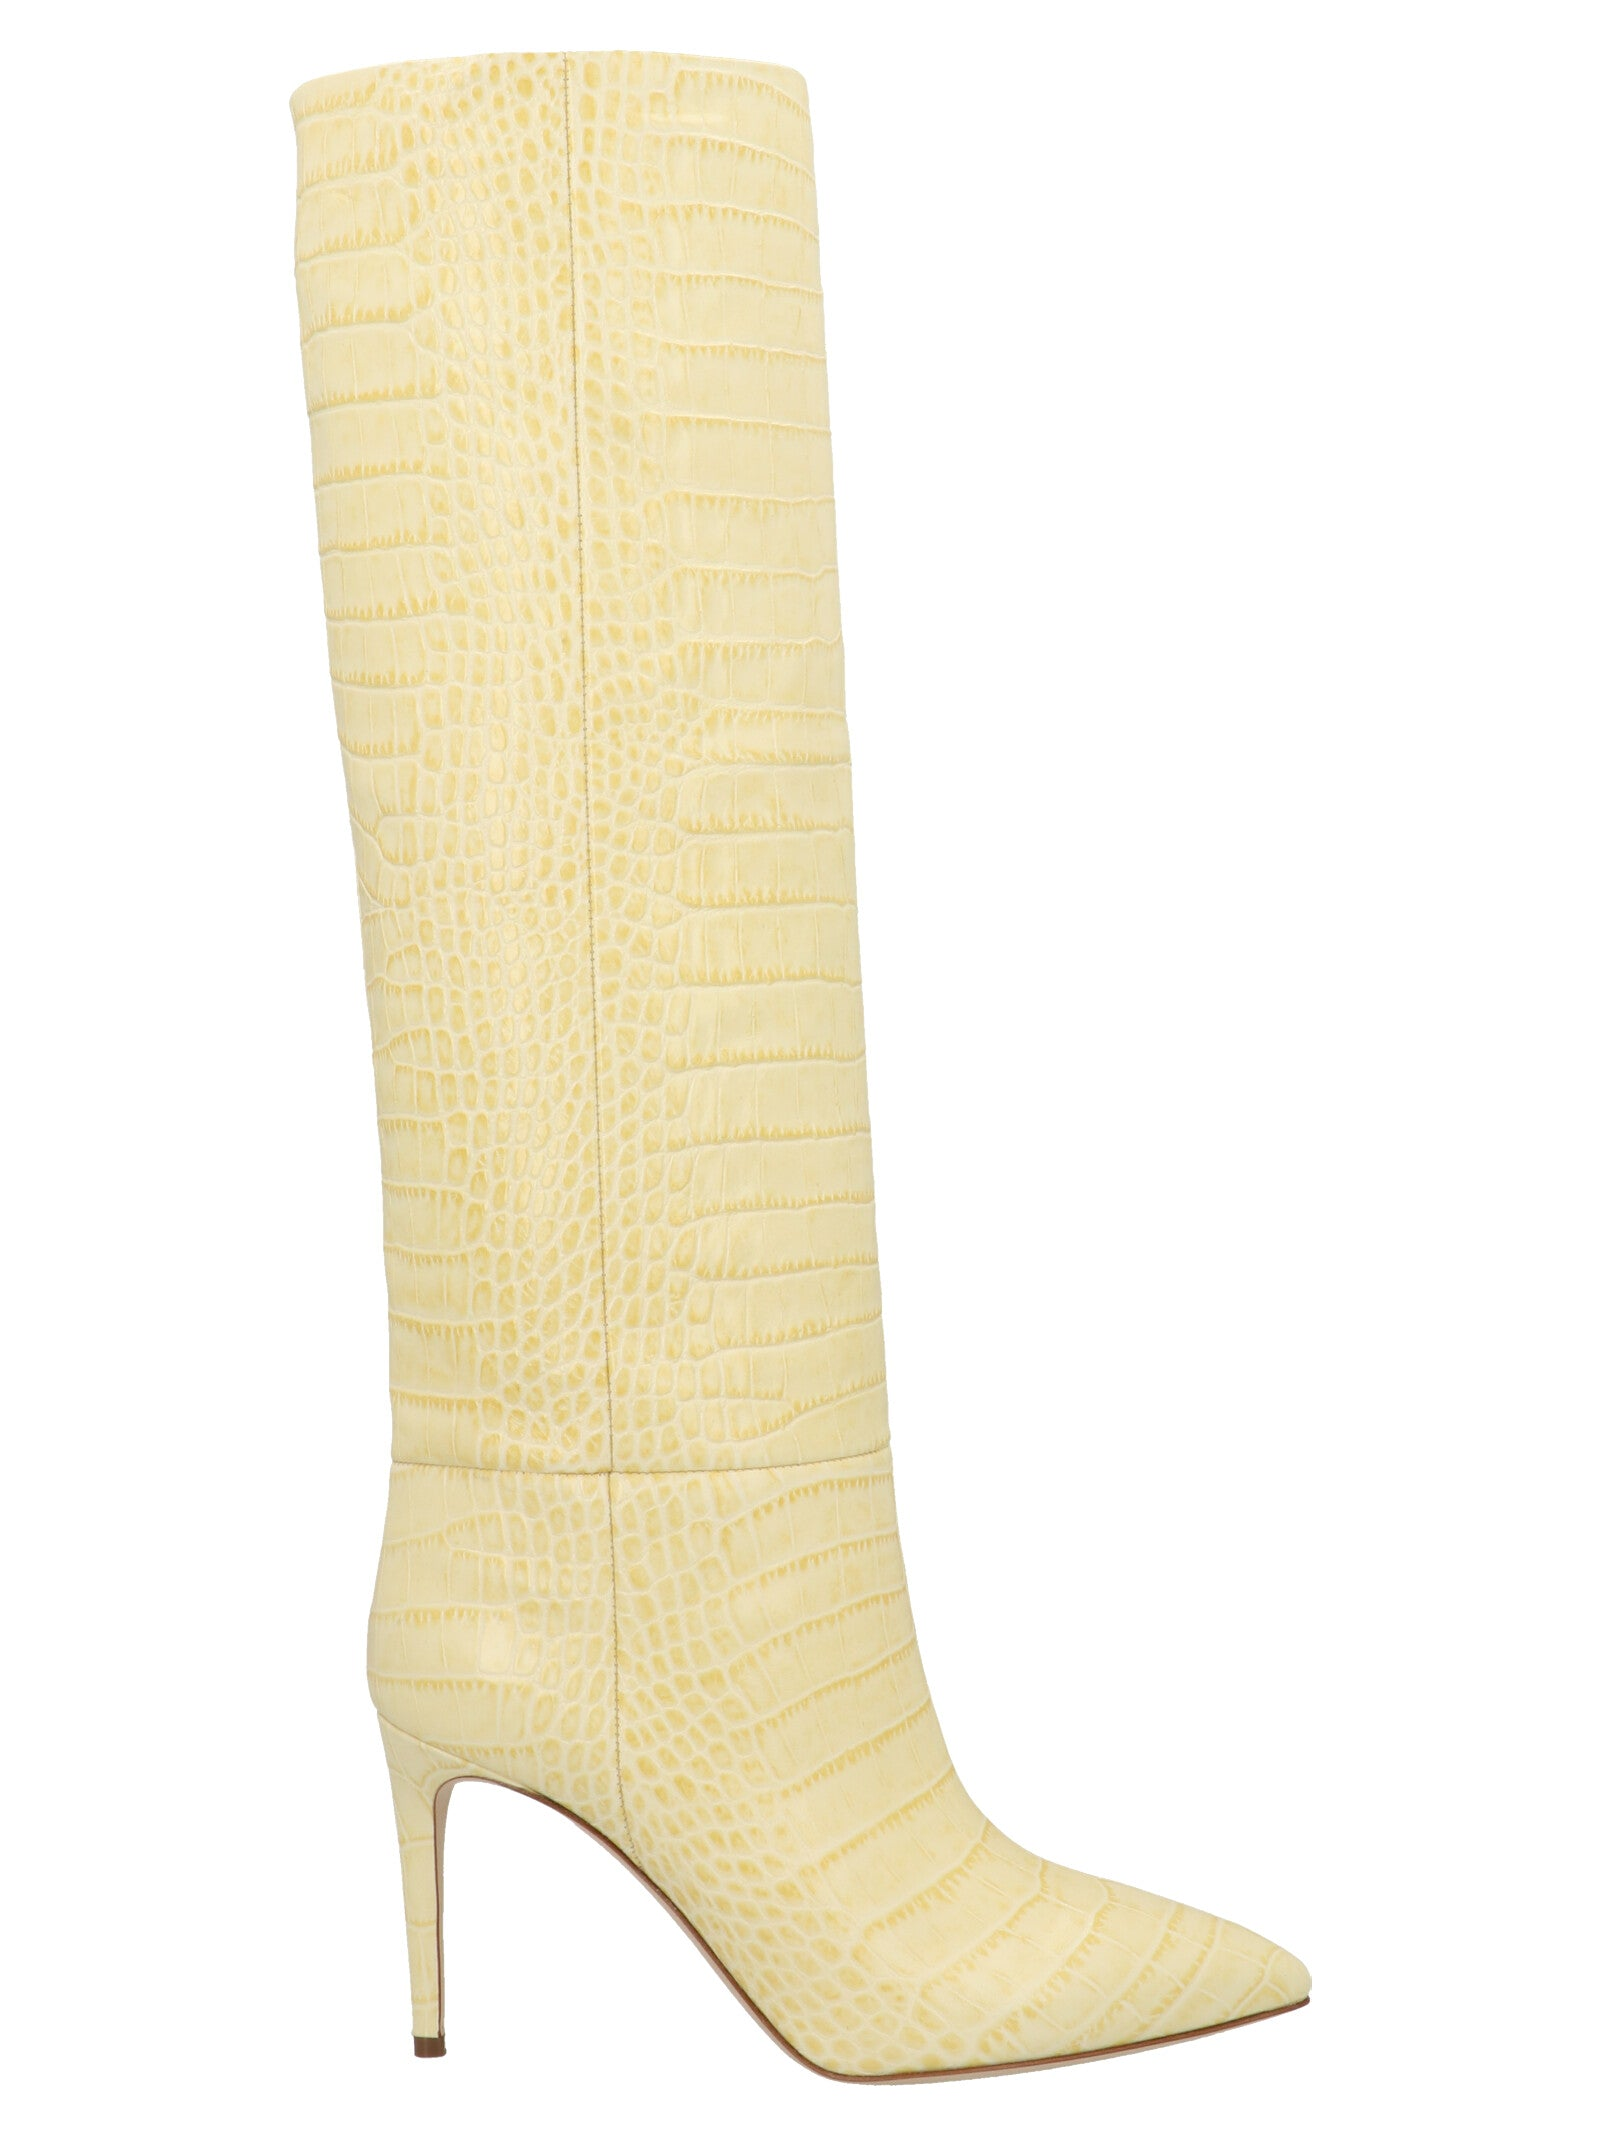 Paris Texas PARIS TEXAS COCO KNEE HIGH BOOTS